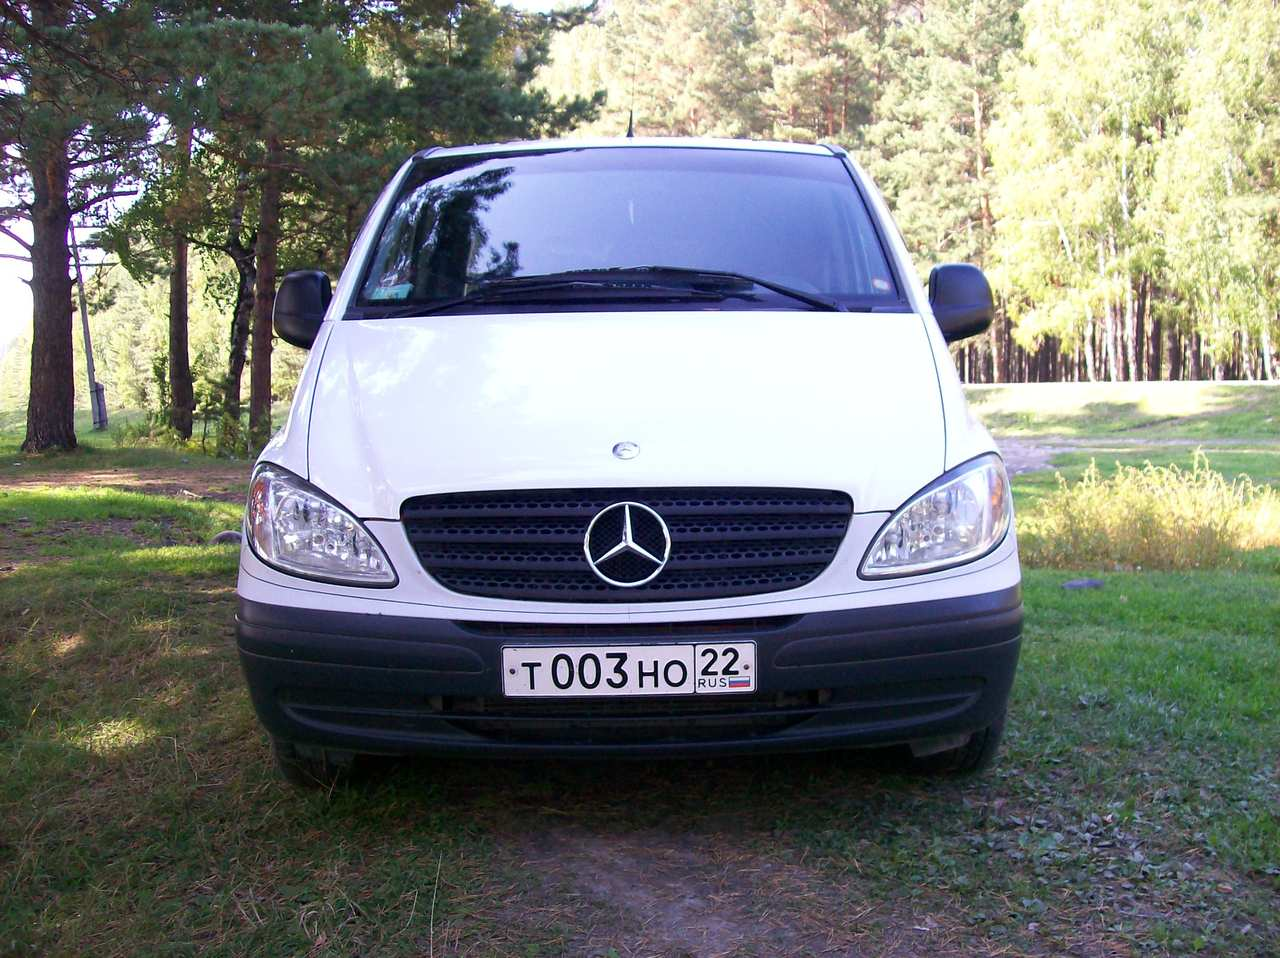 2004 Mercedes Benz VITO Photos 22 Diesel FR or RR Automatic